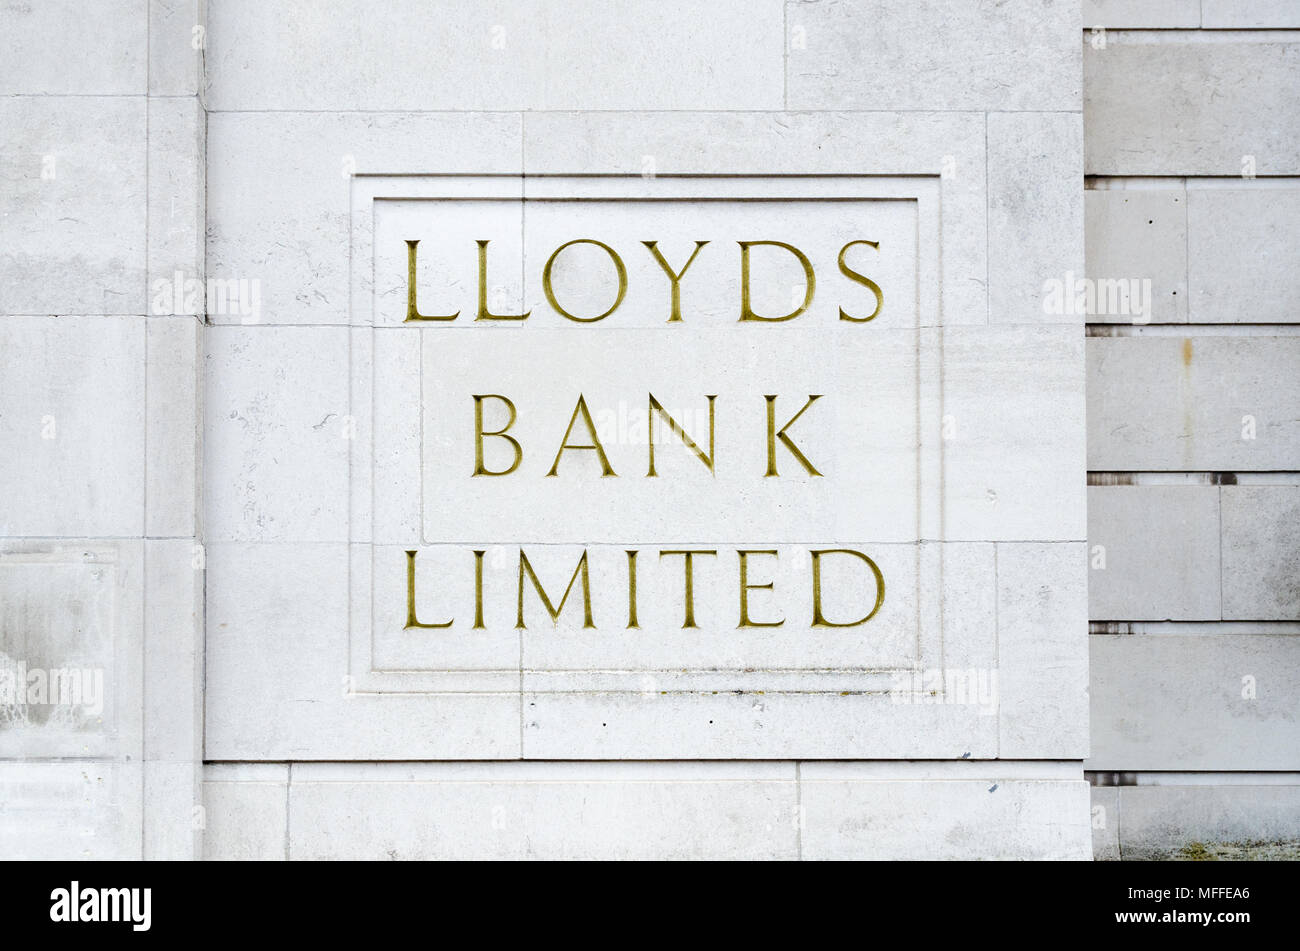 Old traditional Lloyds Bank Limited sign engraved onto stone at a brach in Coventry with gold lettering - Stock Image